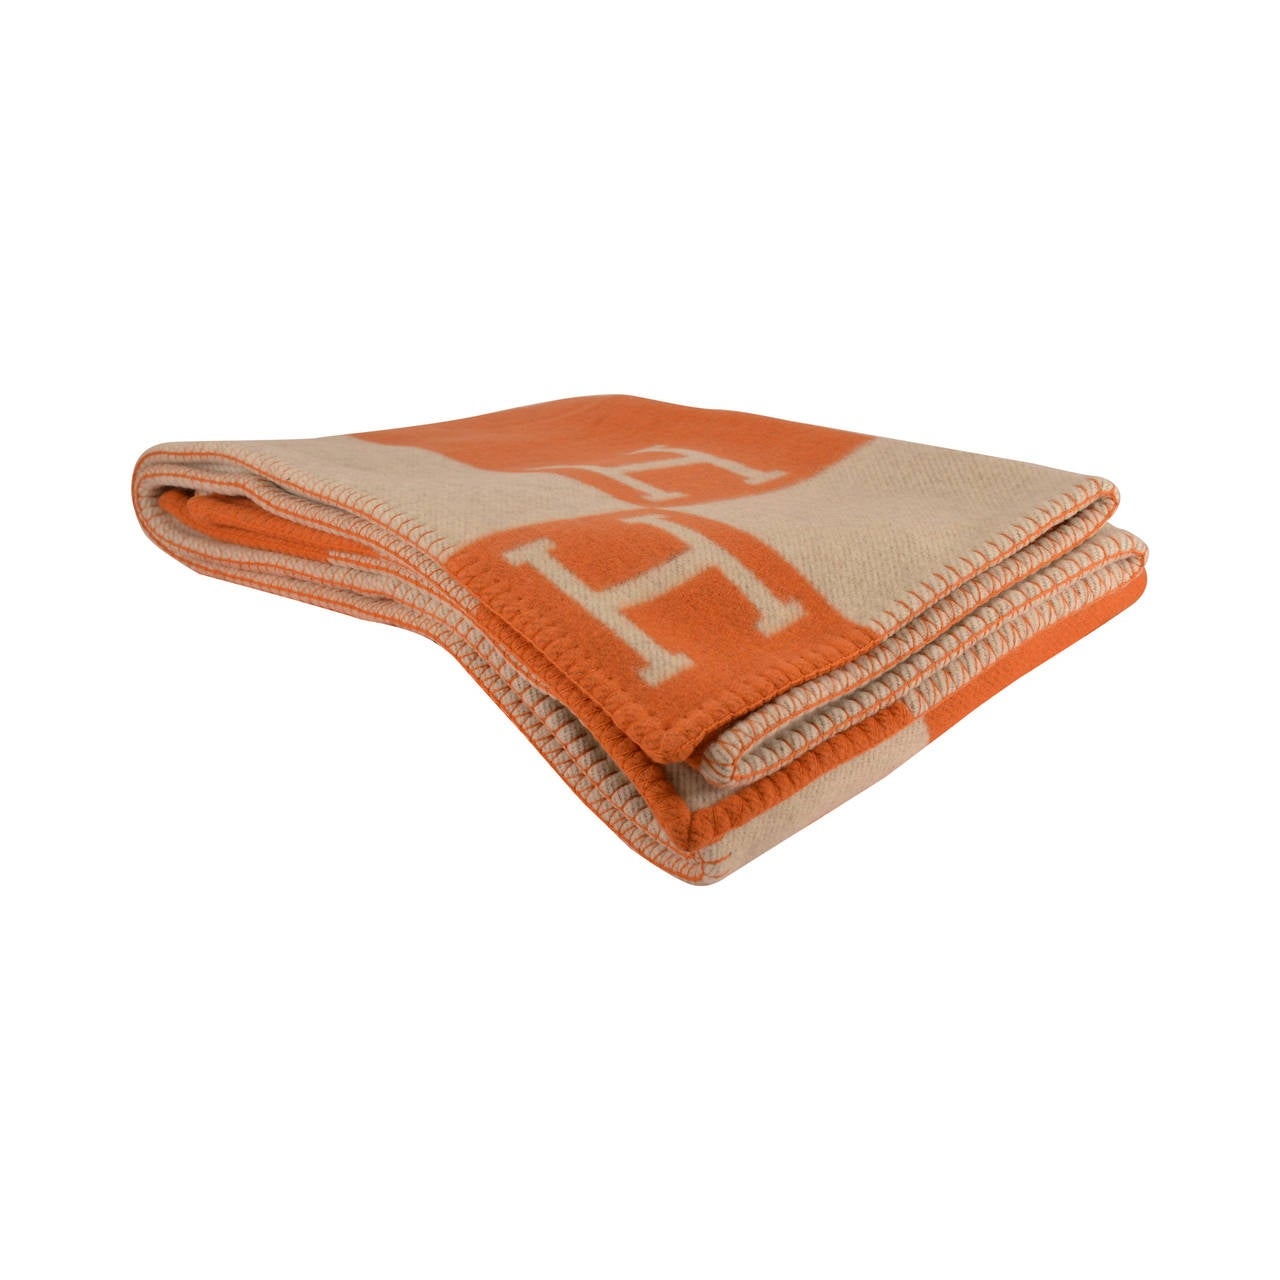 Hermes Avalon Blanket Couch Beige Orange 2015 At 1stdibs